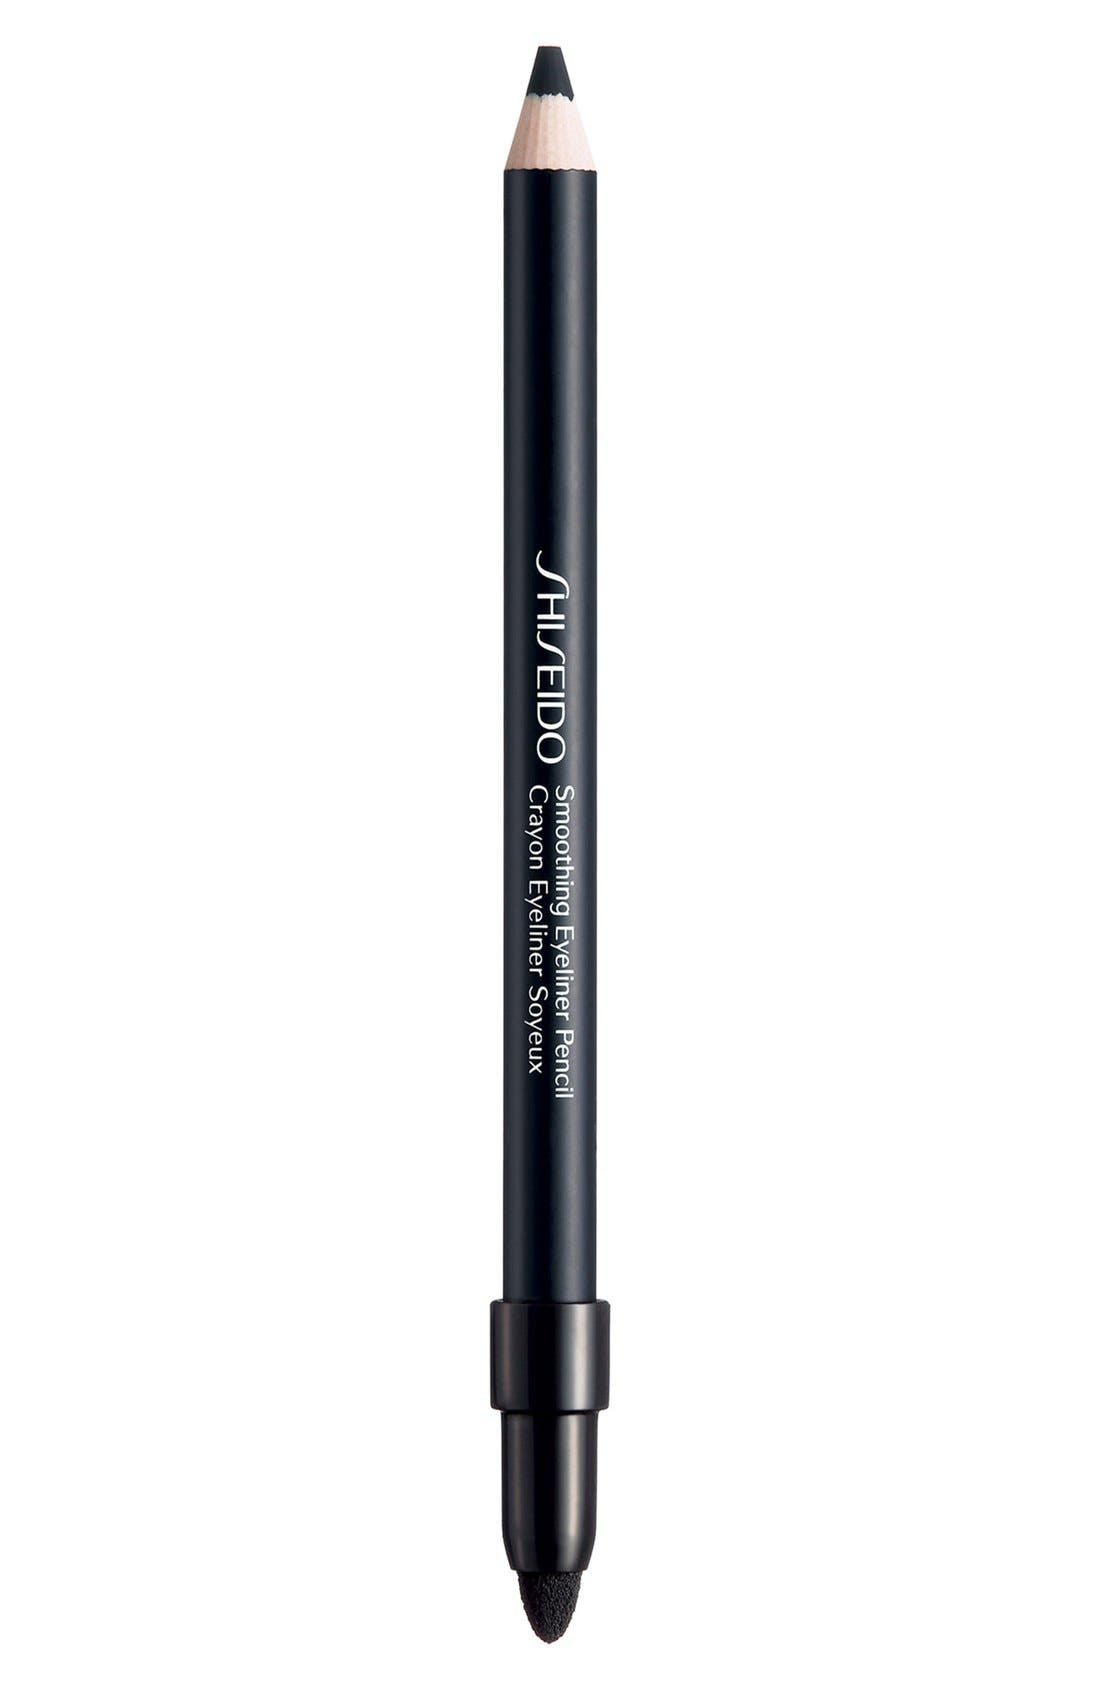 'The Makeup' Smoothing Eyeliner Pencil,                         Main,                         color,